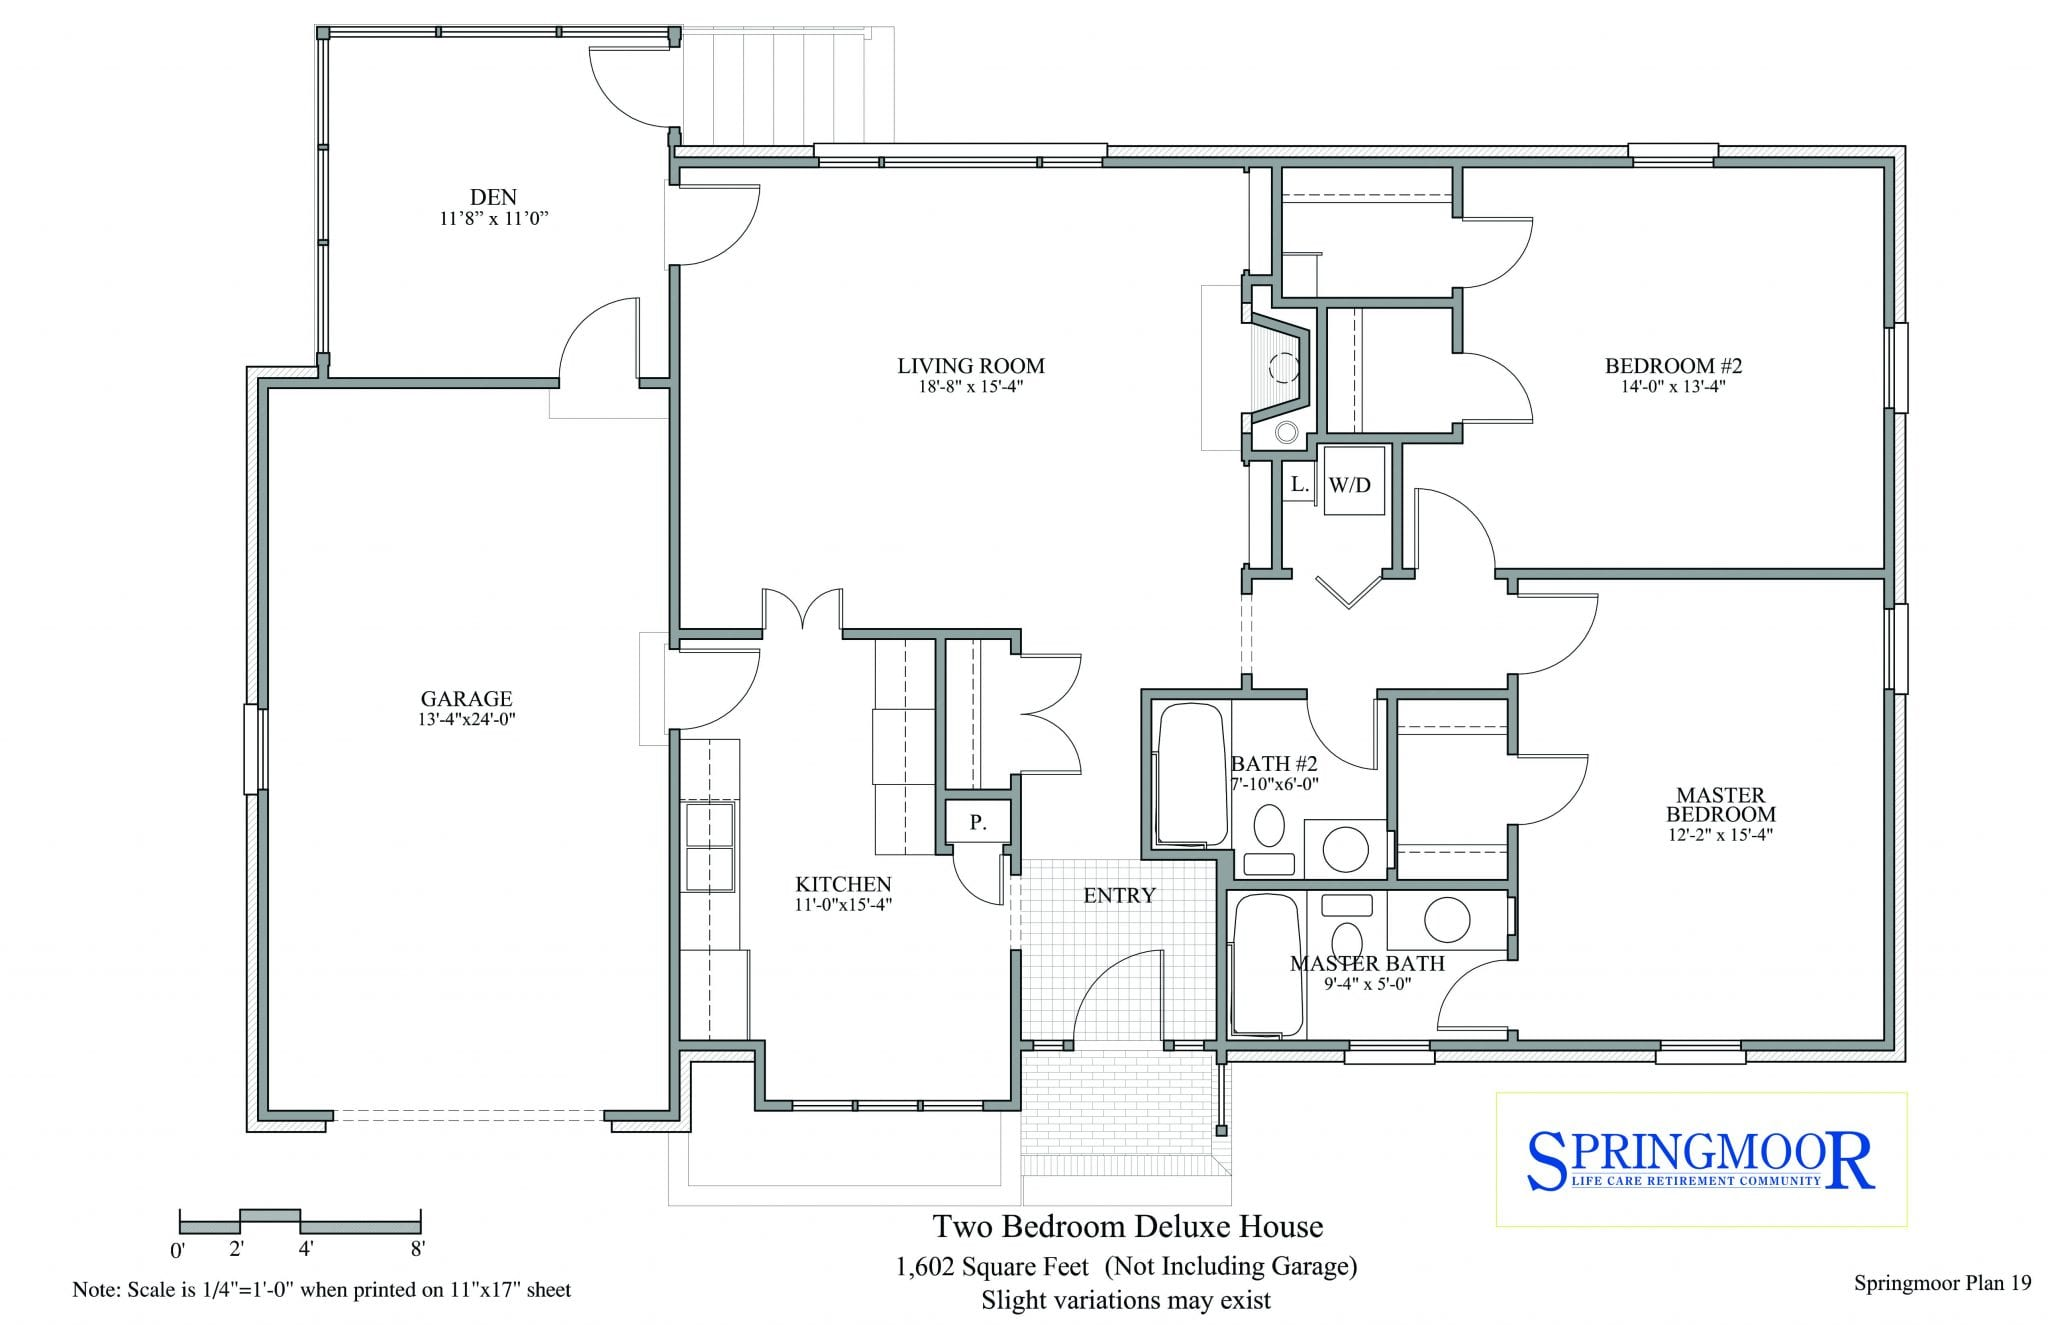 Two Bedroom House Floor Plan Option With Full Baths